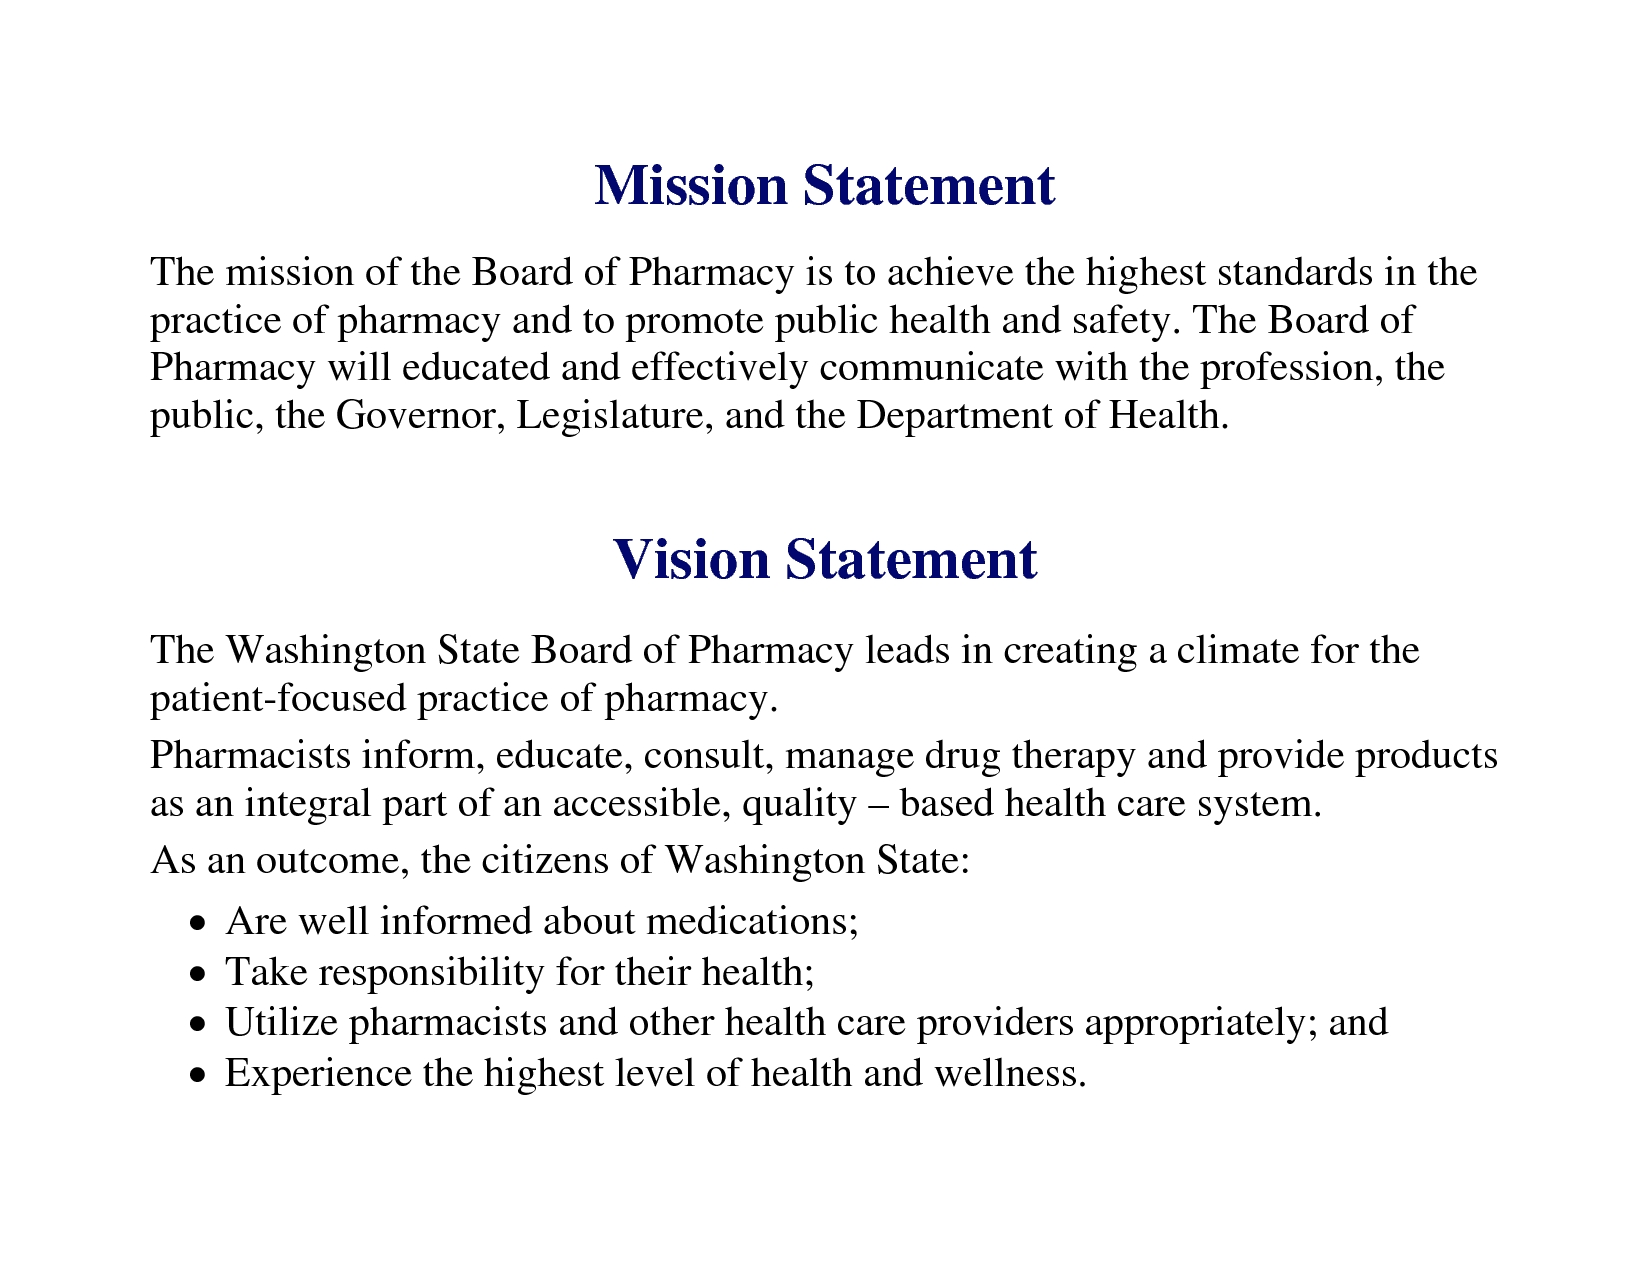 Vision Statement Examples For Business - Yahoo Image Search Results pertaining to Mission Statement Examples For Business 58143